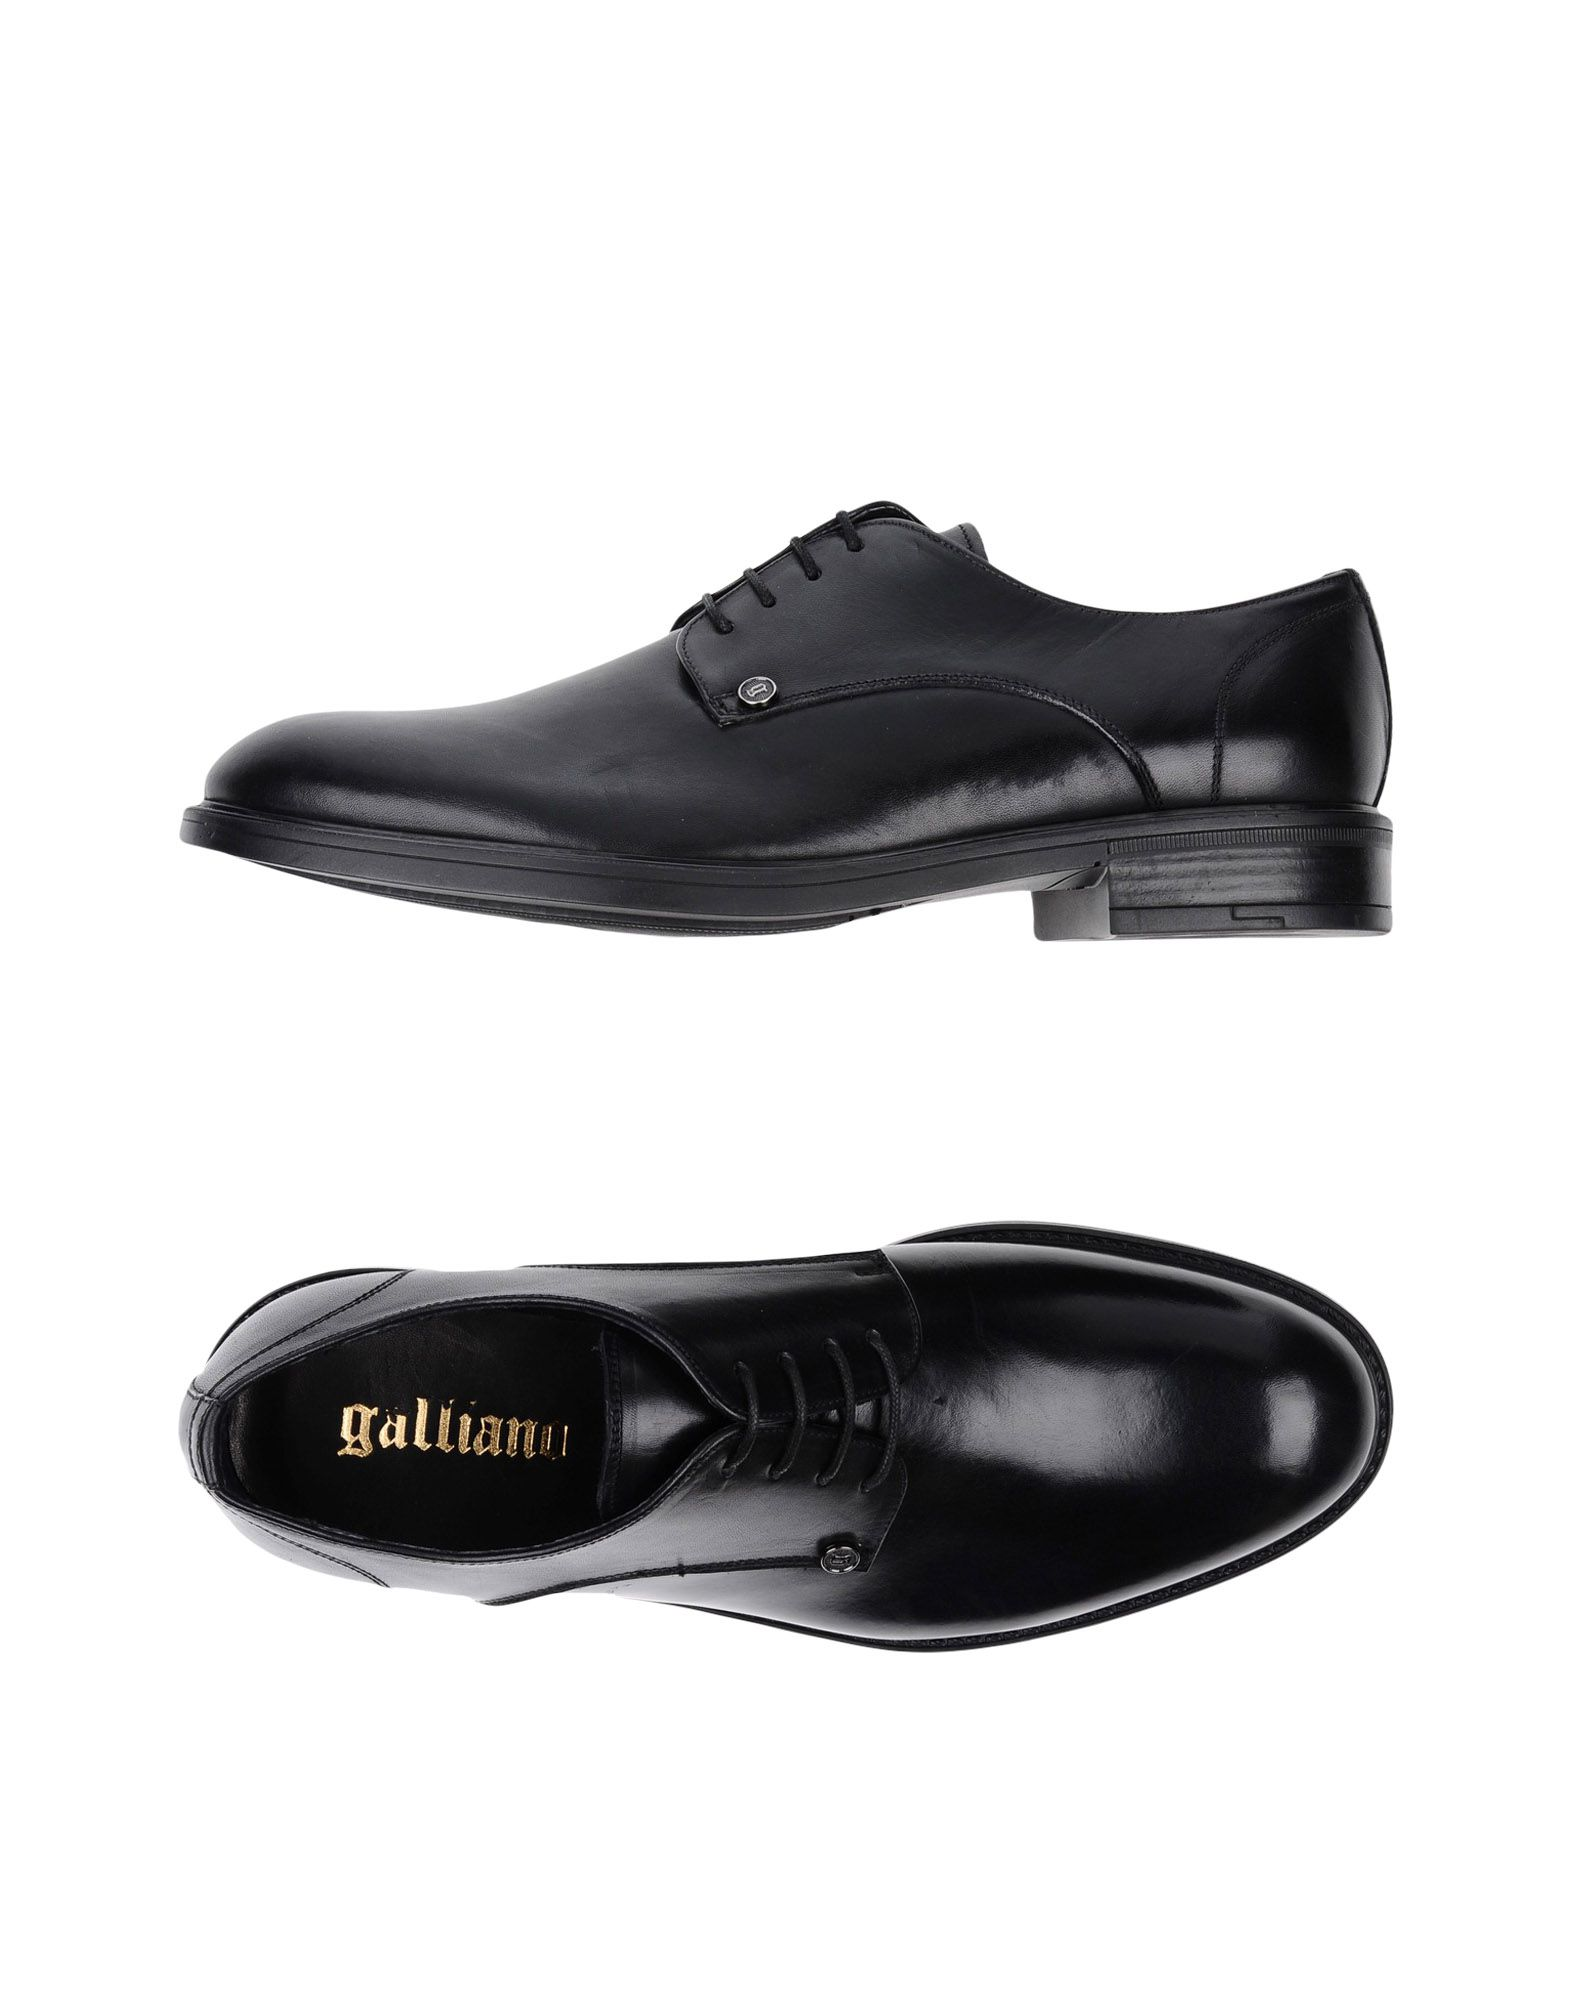 Chaussures À Lacets Galliano Homme - Chaussures À Lacets Galliano sur